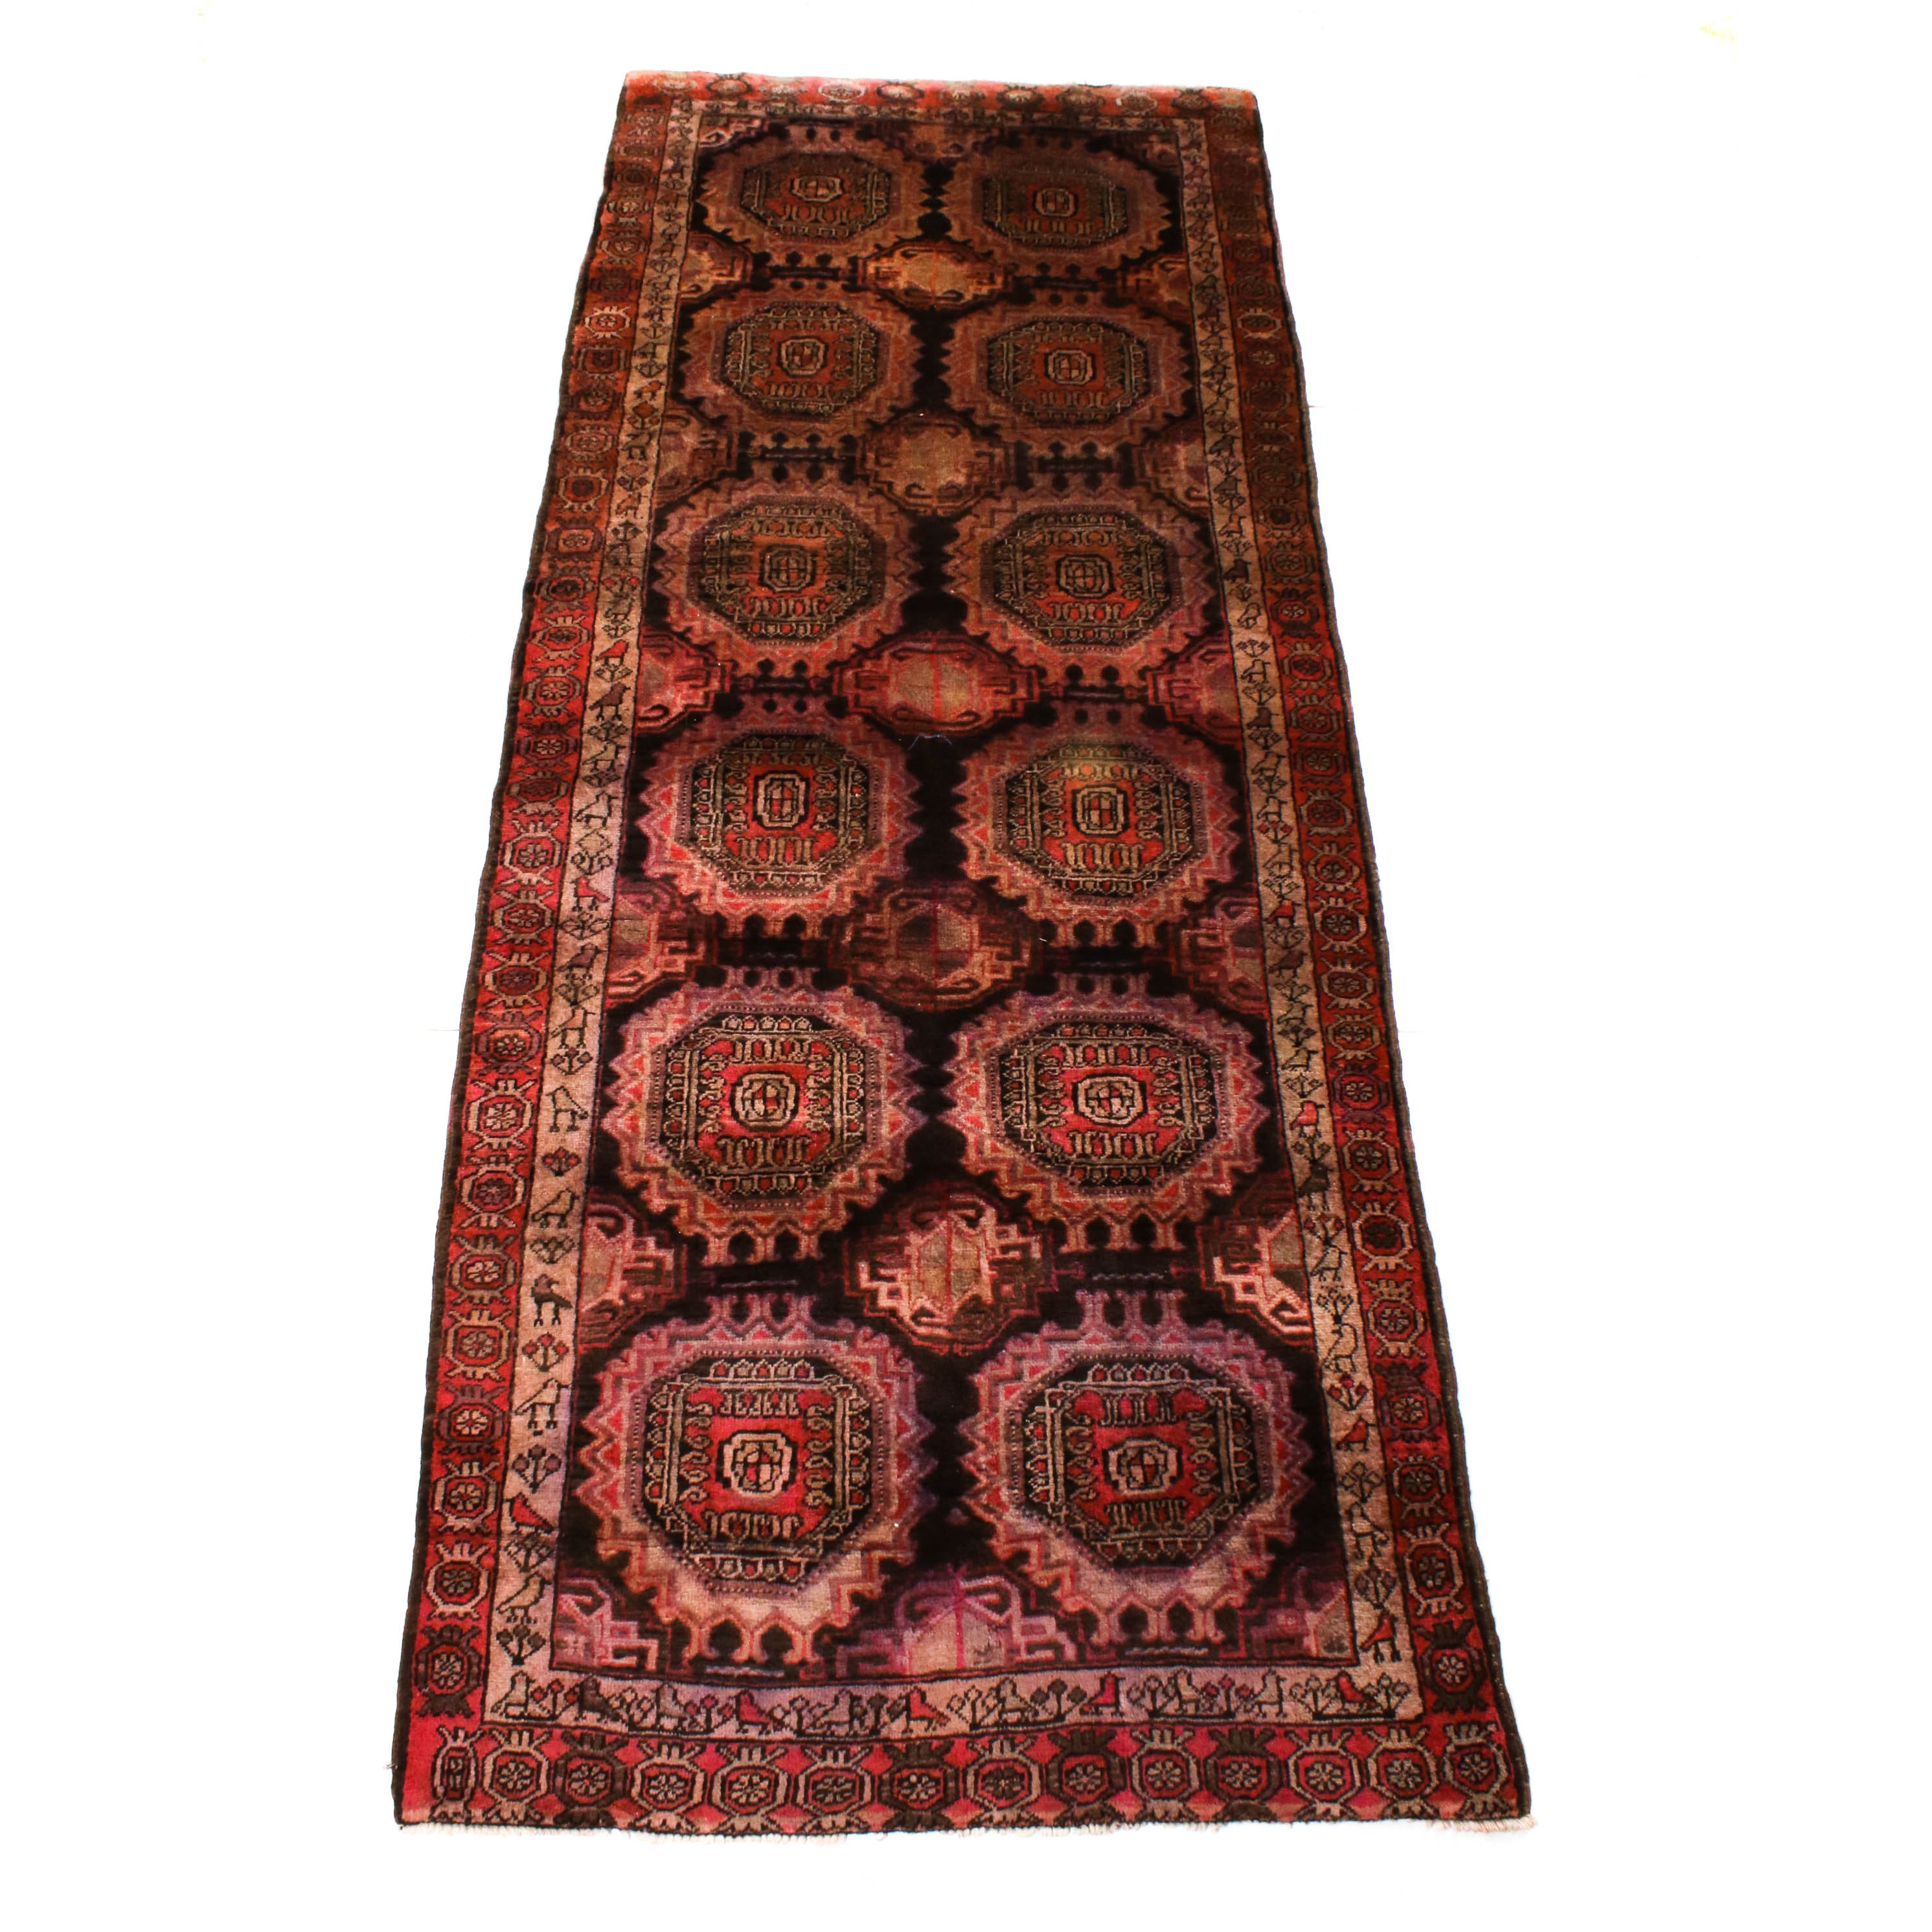 Hand-Knotted Afghani Pictorial Sahrukh Wool Long Rug